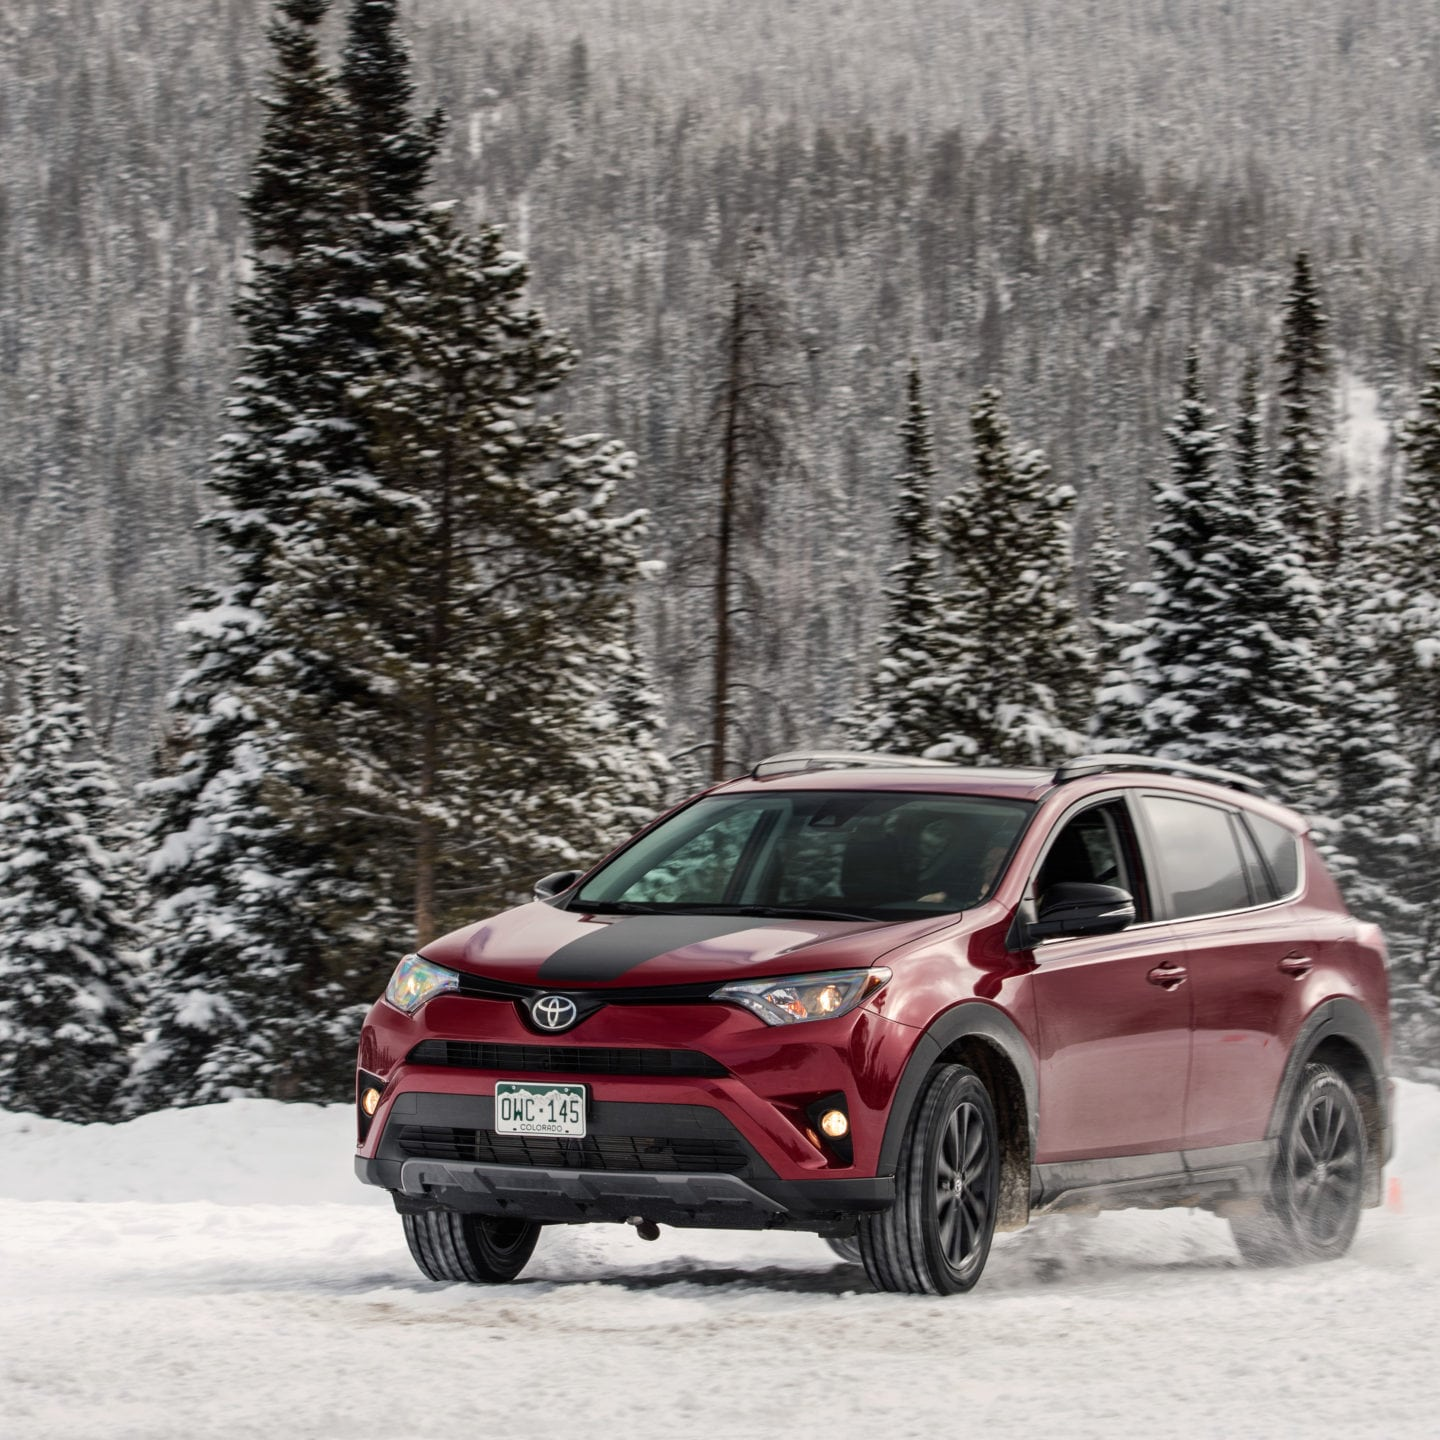 2018 Toyota RAV4 Brings Adventure To the Tiny Crossover That Started It All